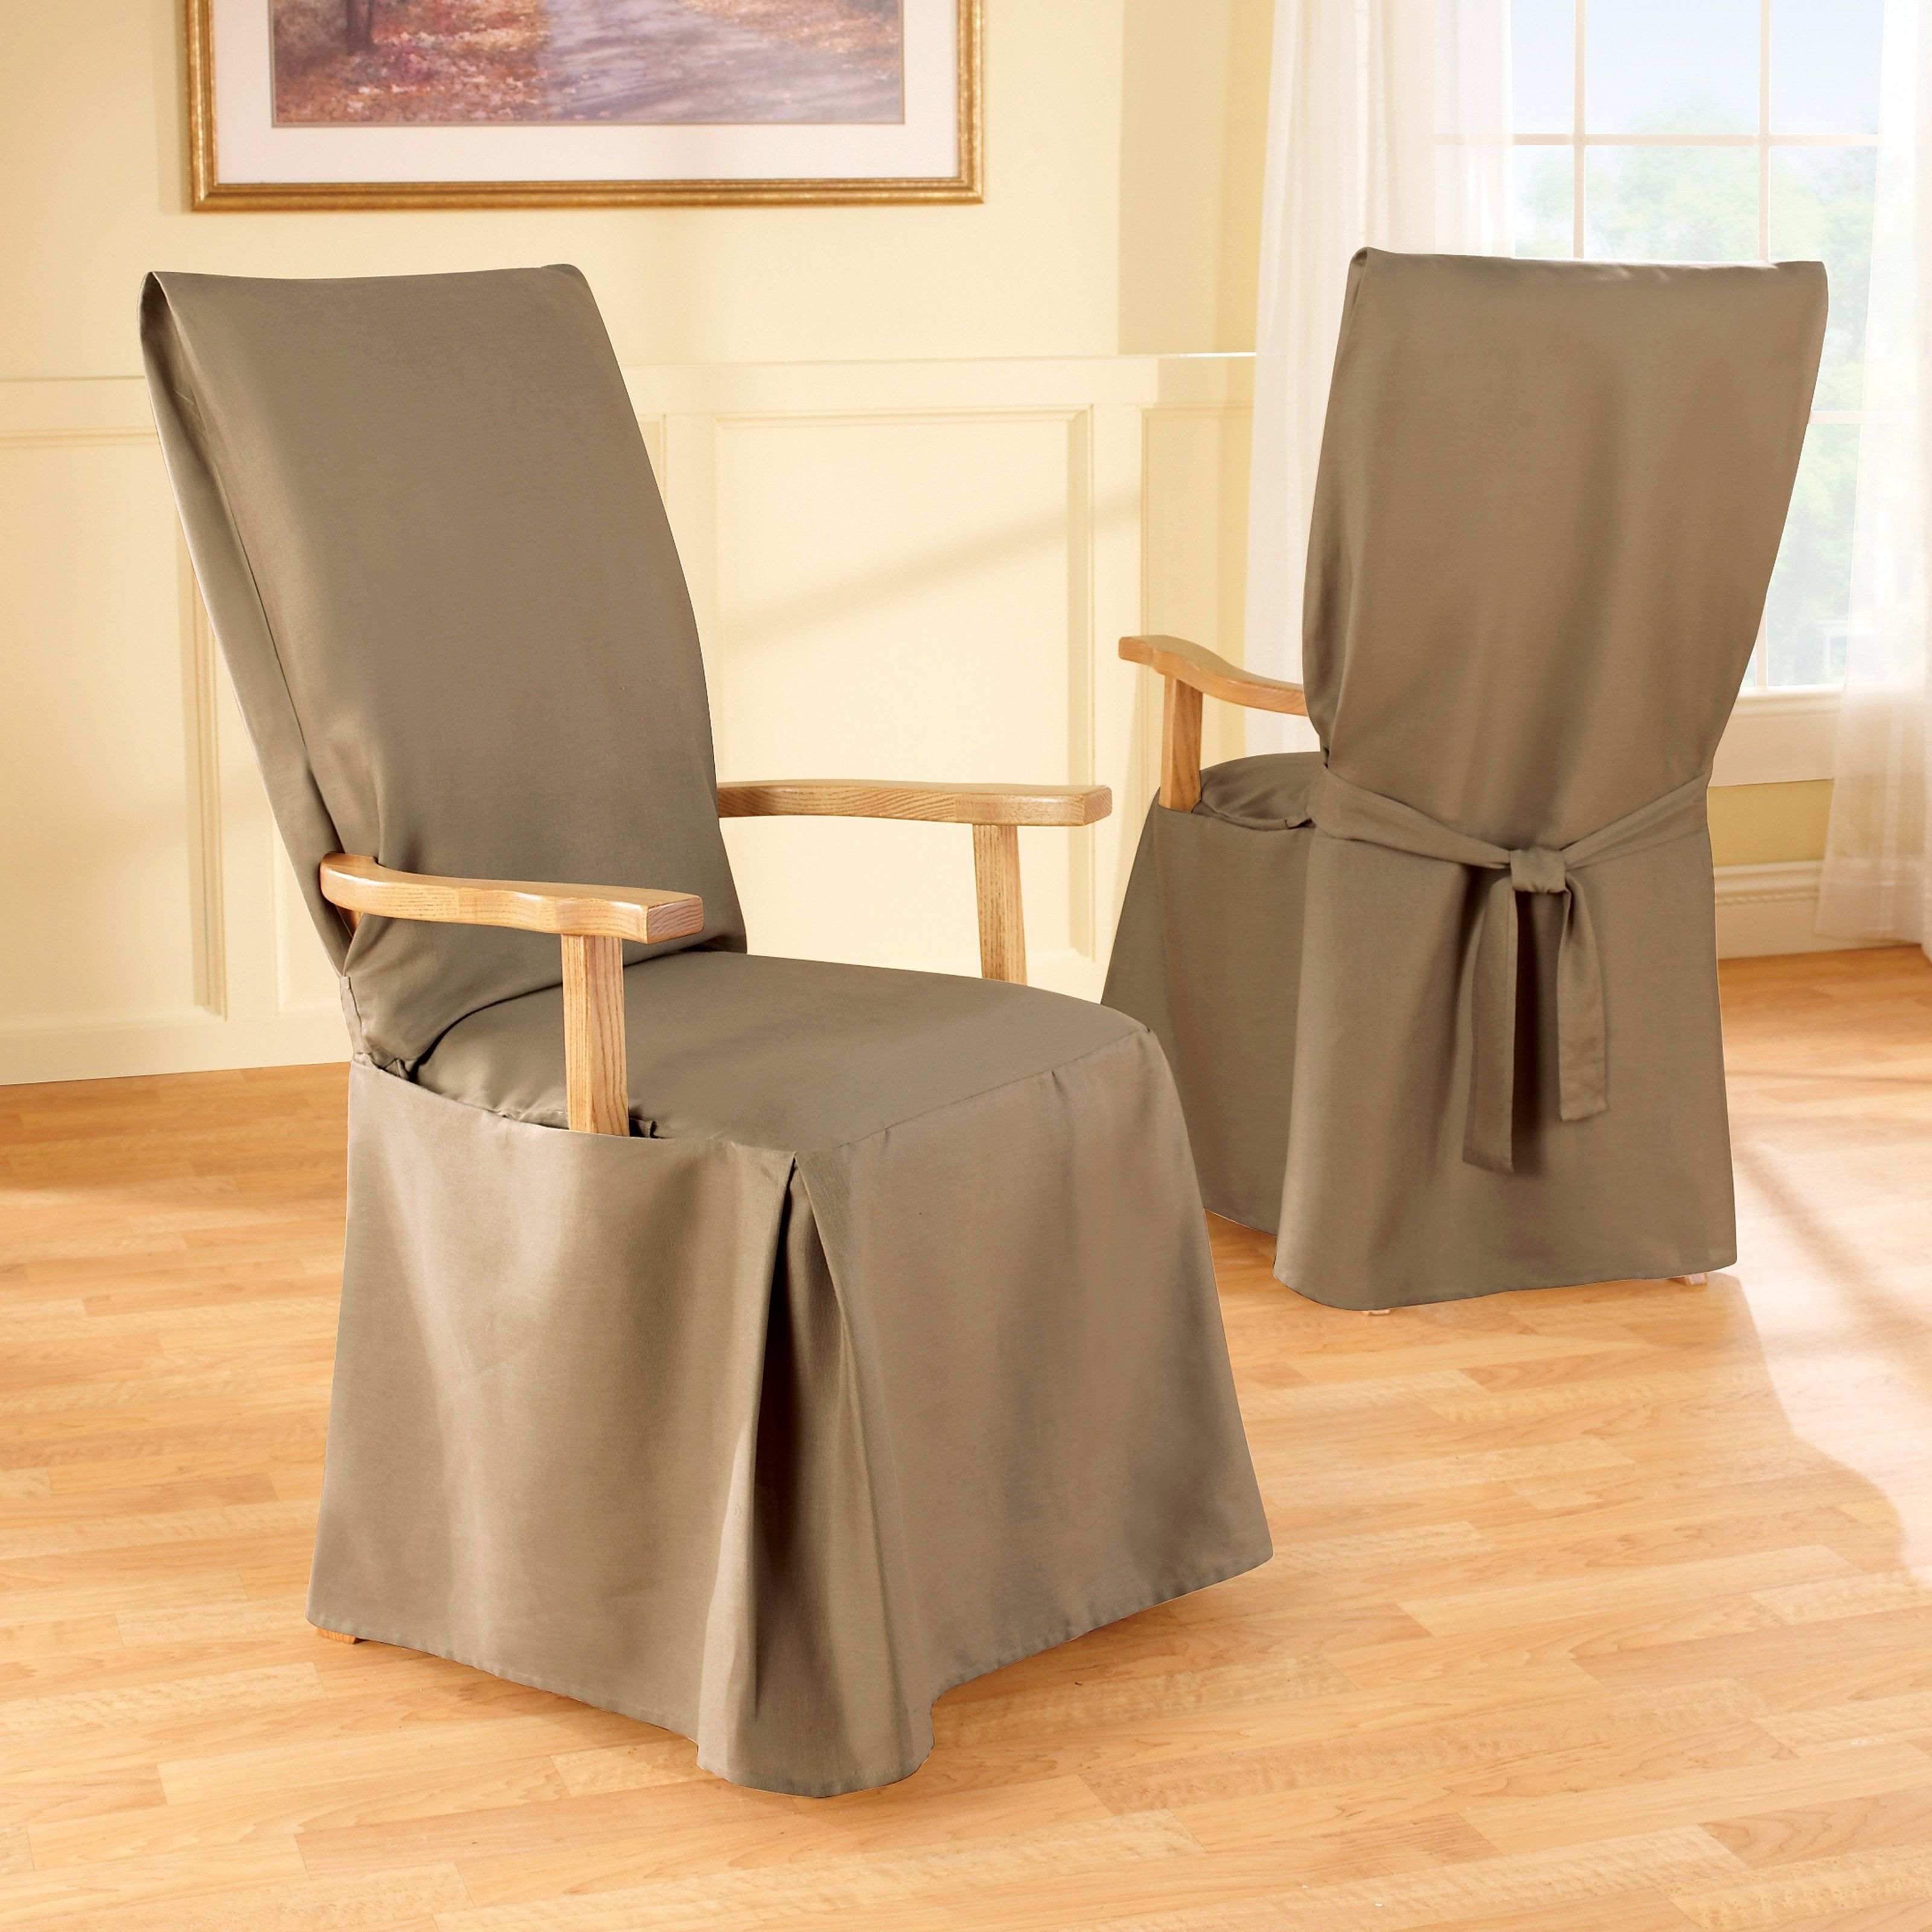 Chair Covers For Chairs With Arms